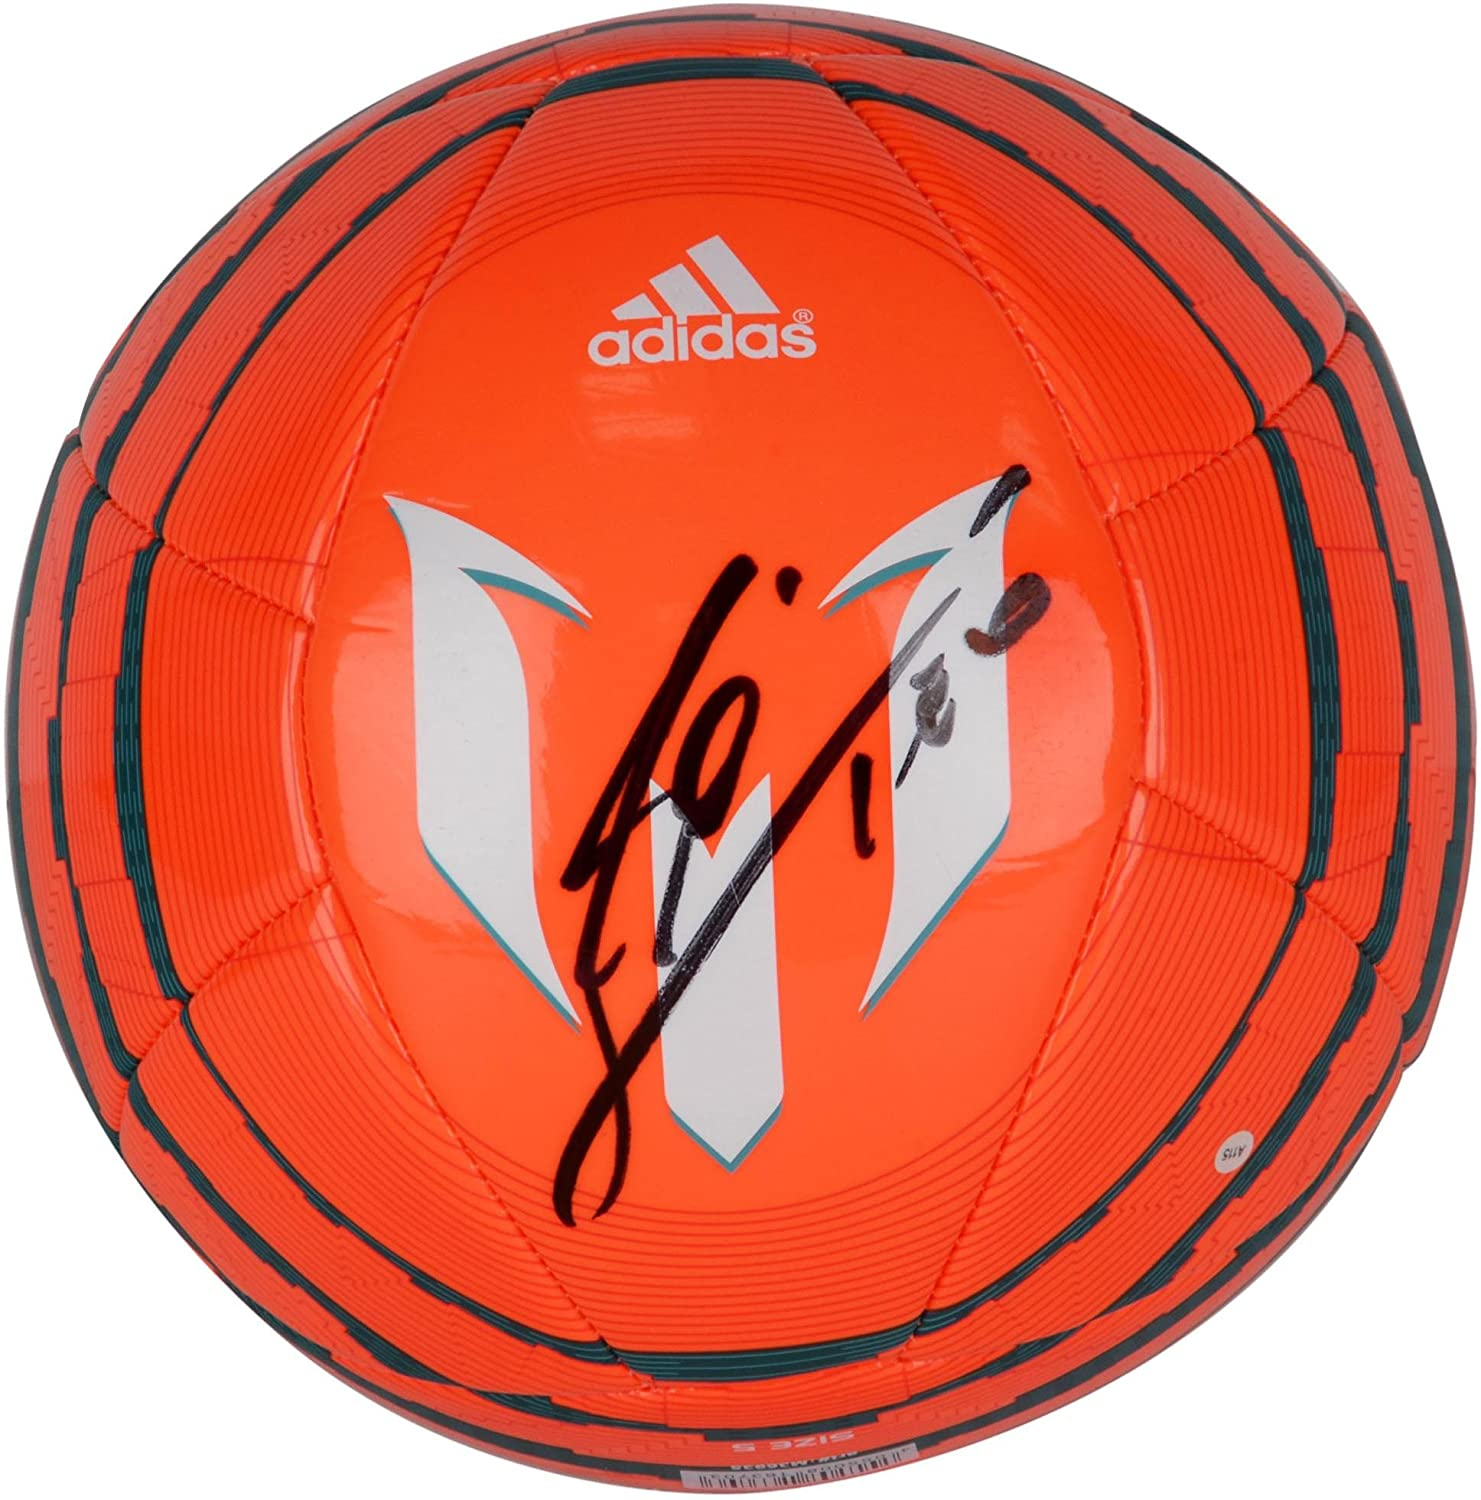 Lionel Messi Adidas Ball u37nG3T